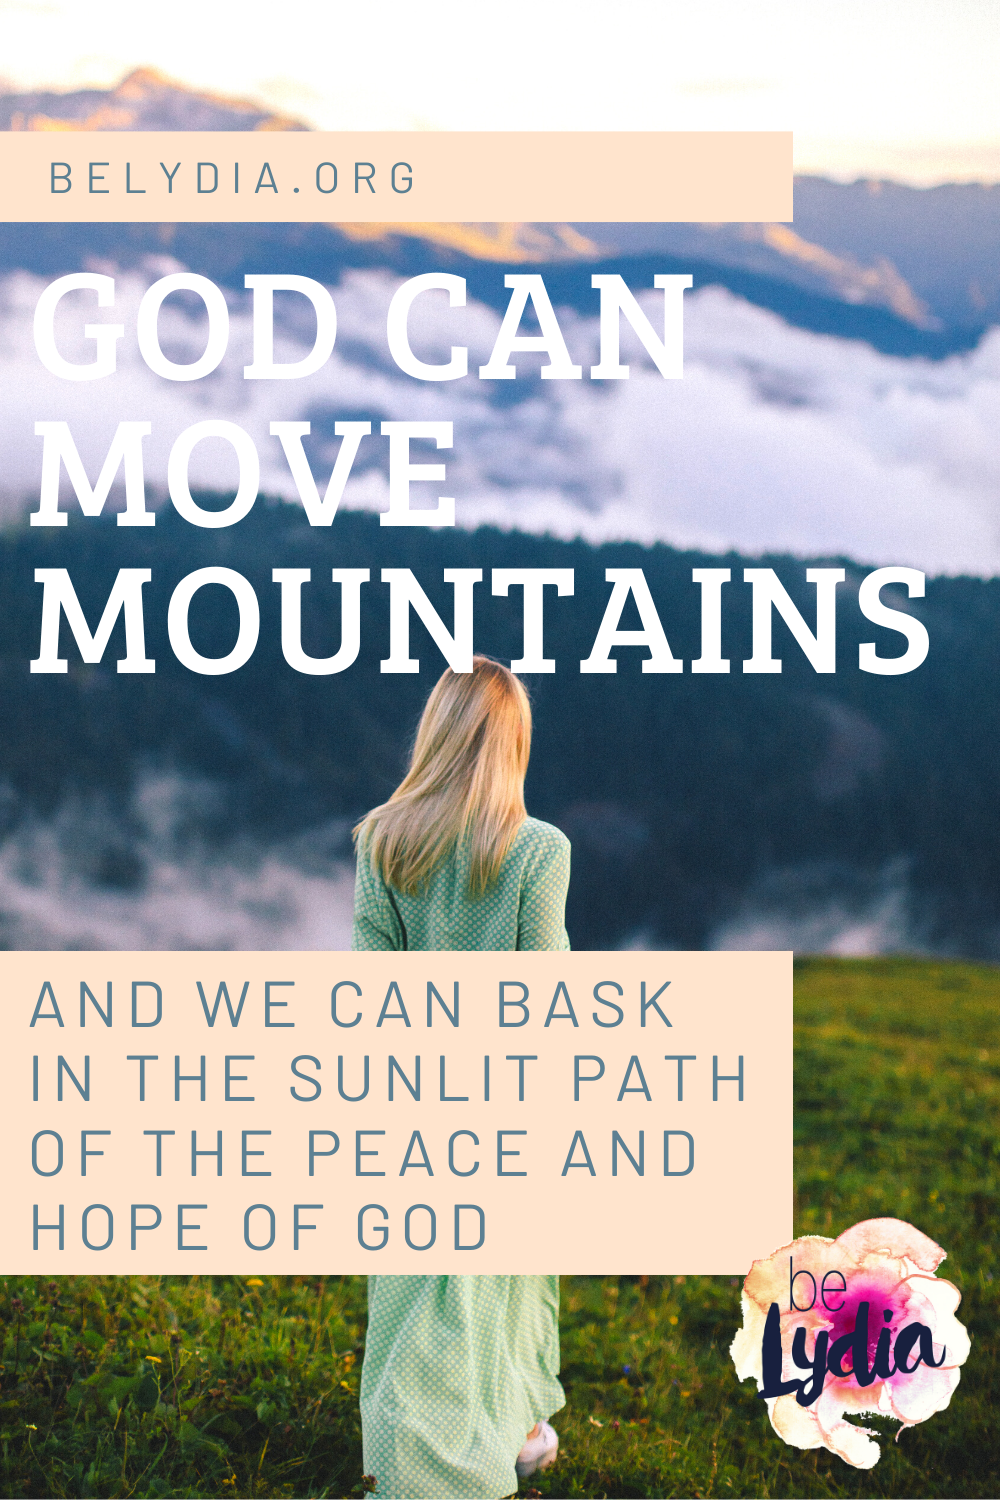 Lifting My Eyes Up to the Hills A peace came over me that warm summer morning as I walked down the overgrown, grassy path behind my house. And I basked in the sunlit path of the peace and hope of God. God can move mountains.